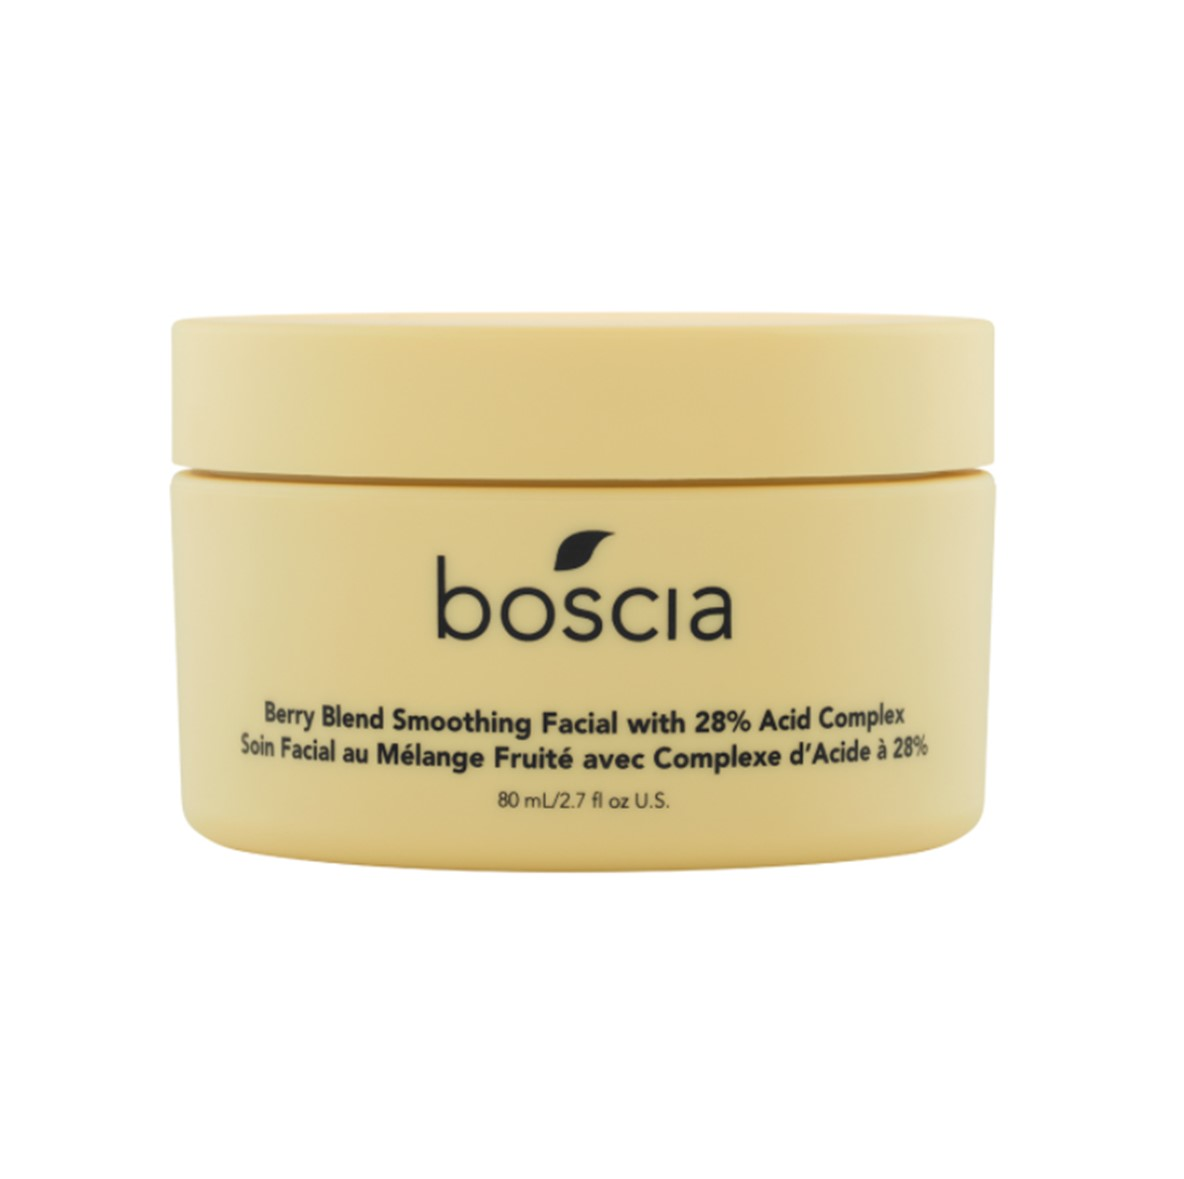 Boscia - Berry Blend Smoothing Facial with 28% Acid Complex